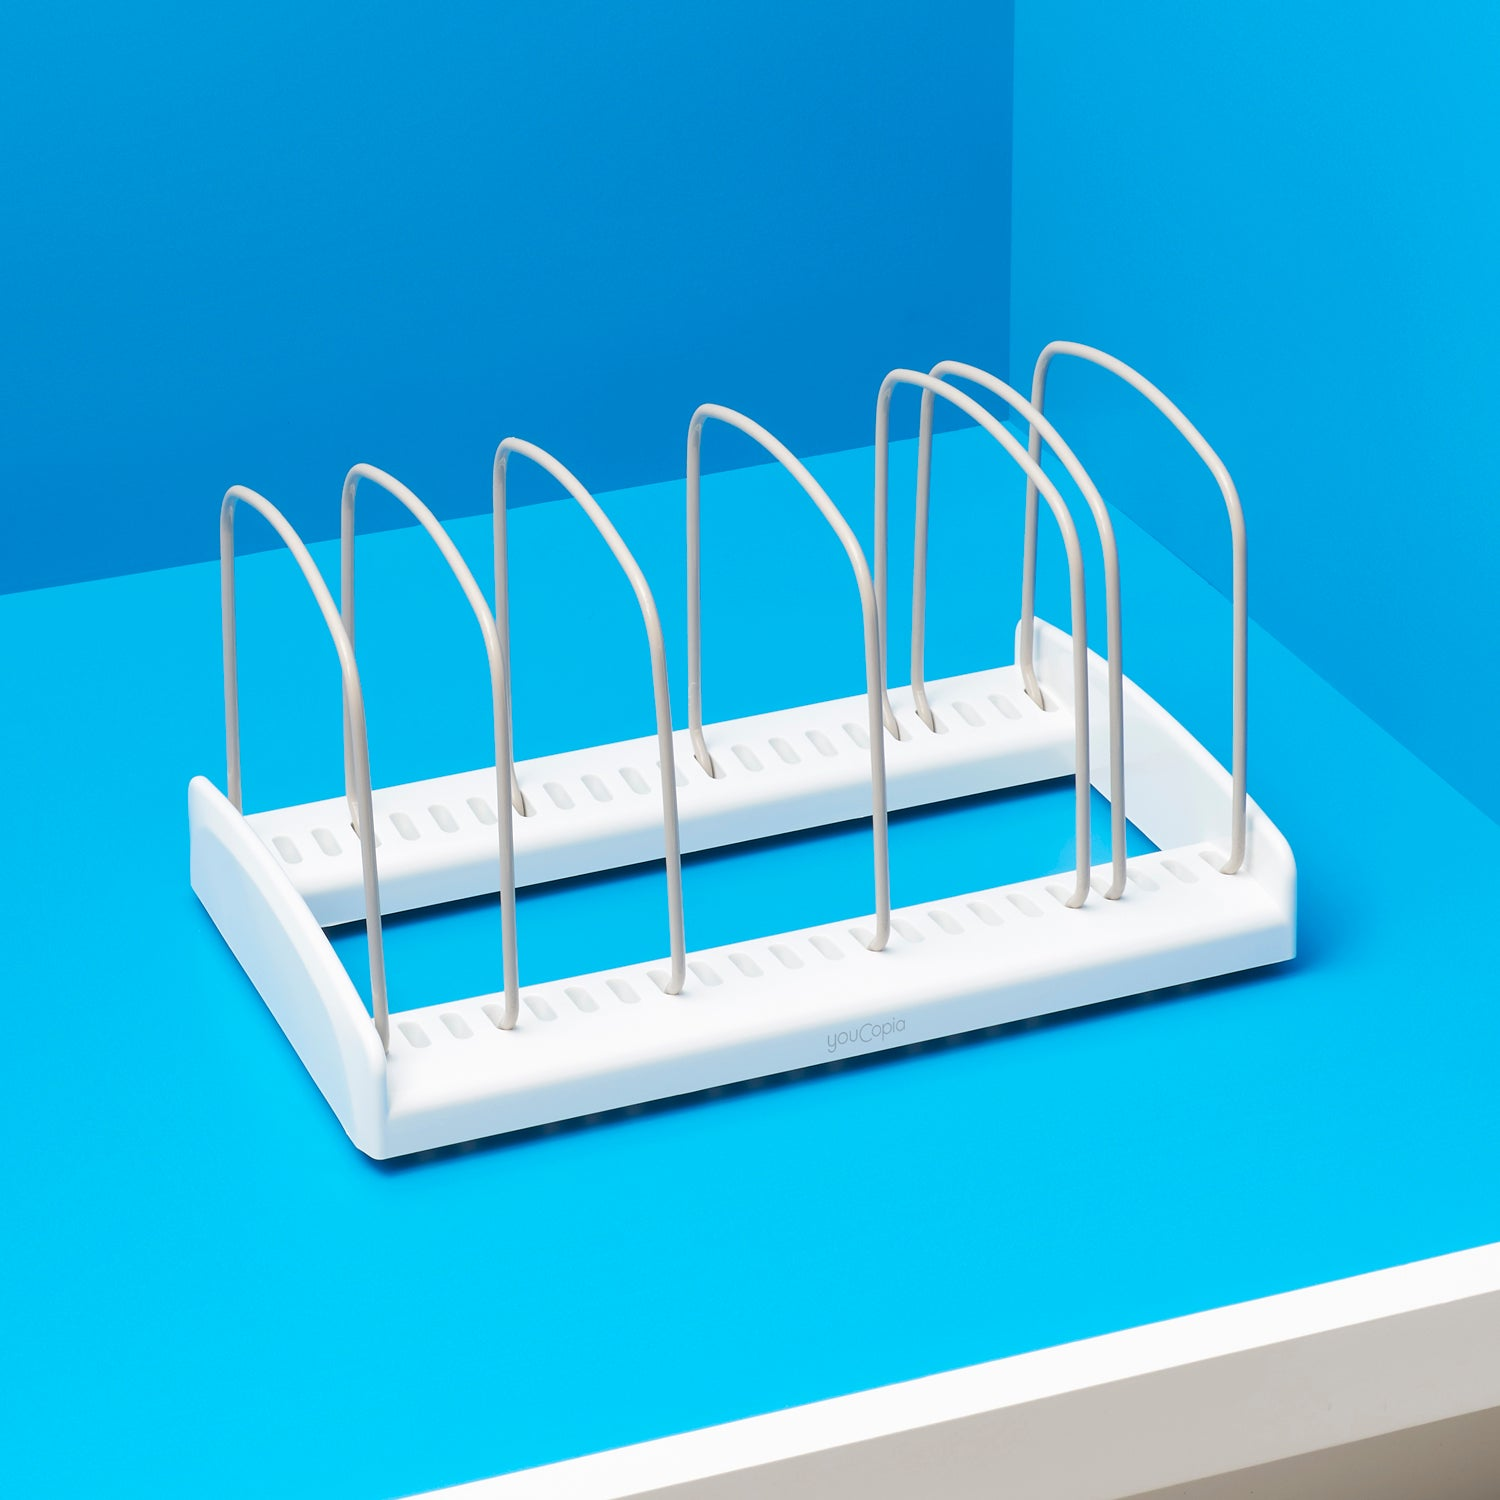 StoreMore Adjustable Bakeware Rack